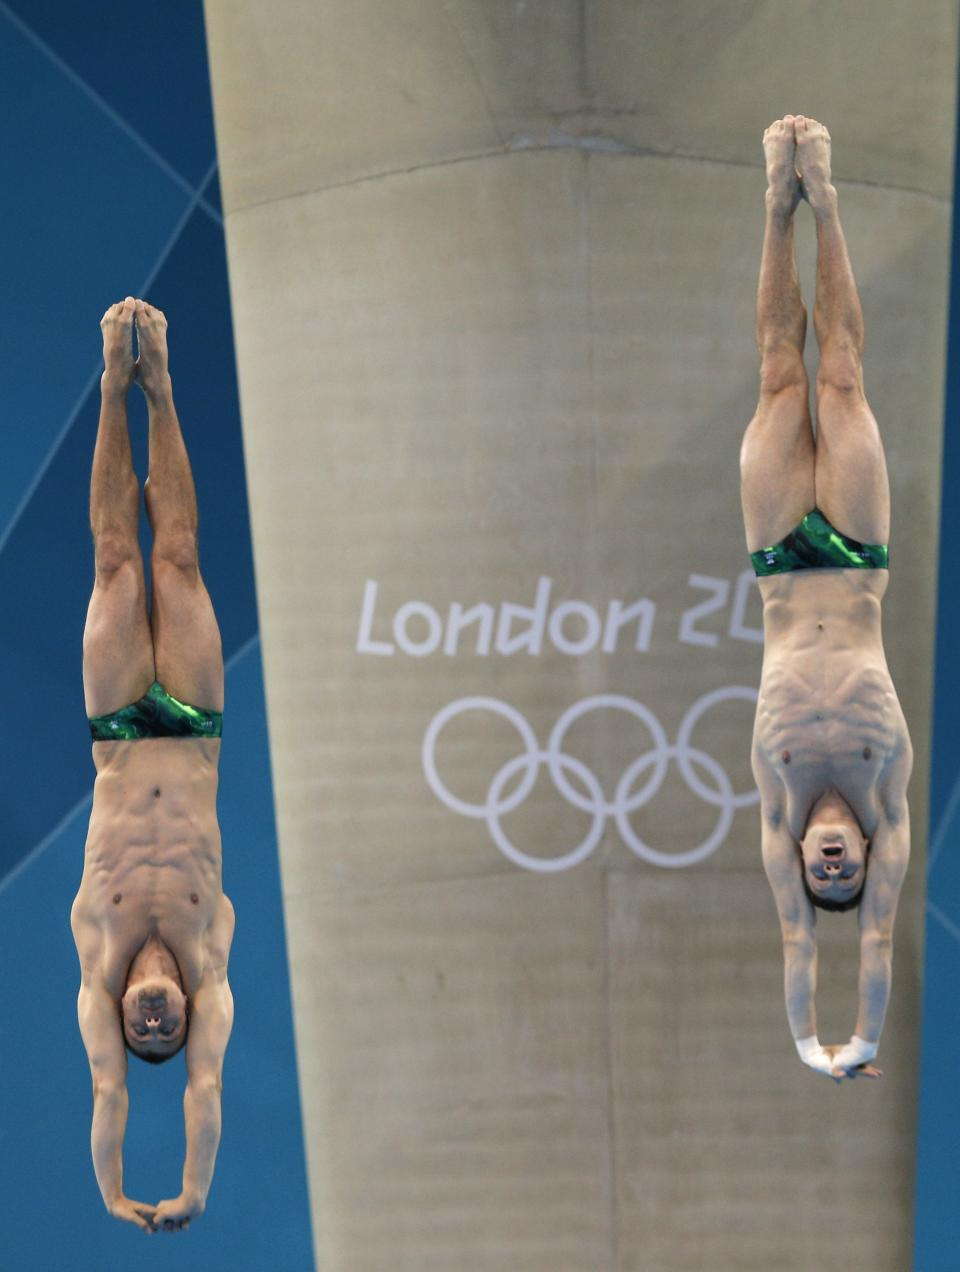 Sascha Klein, left, and Patrick Hausding of Germany compete during the Men's Synchronized 10 Meter Platform Diving final at the Aquatics Centre in the Olympic Park during the 2012 Summer Olympics in London, Monday, July 30, 2012. (AP Photo/Christophe Ena)